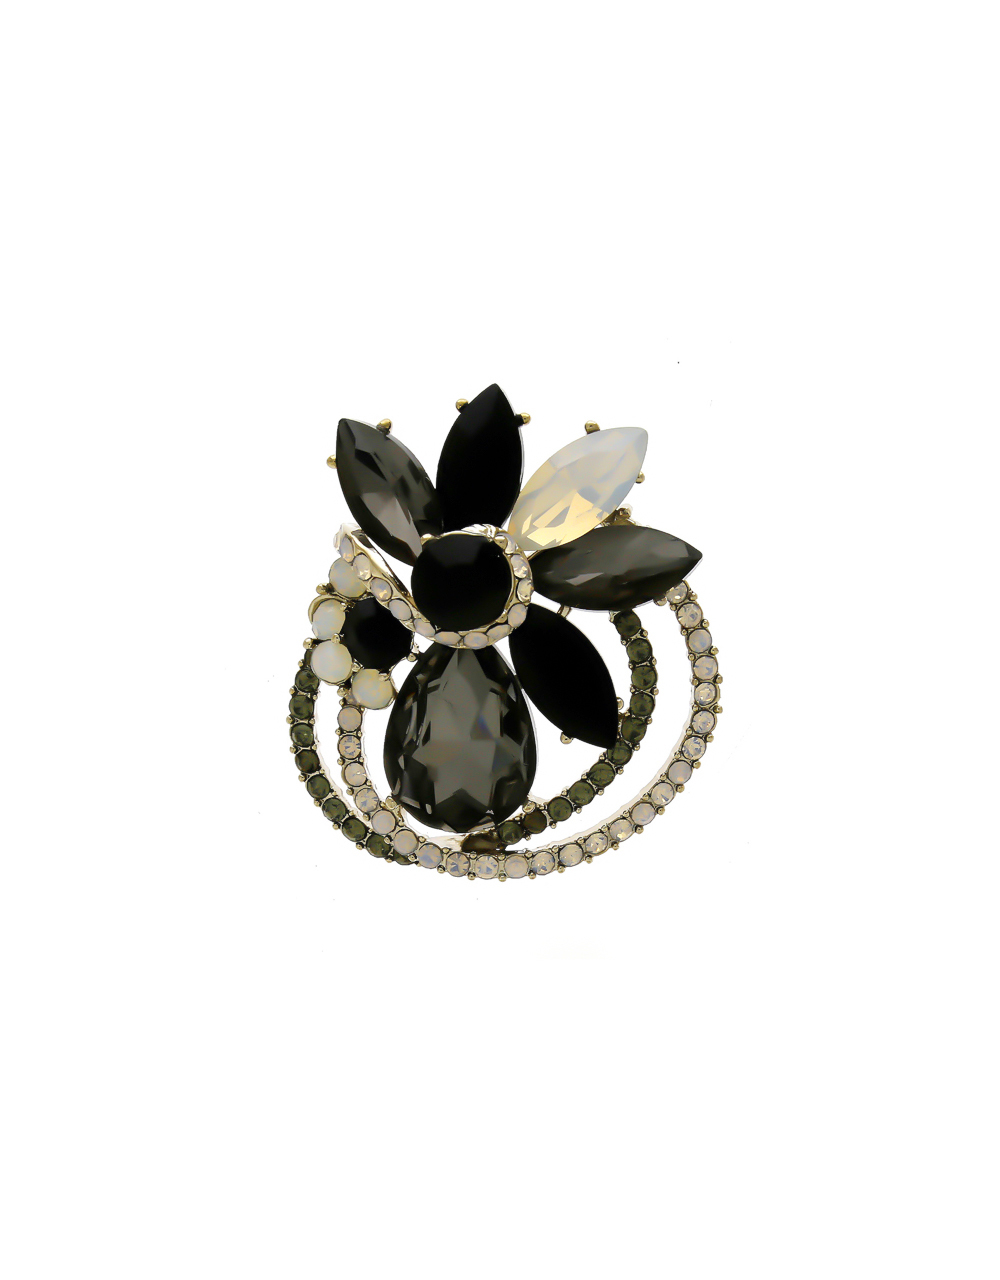 Grey Colour Gold Finish Stunning Brooch For Men